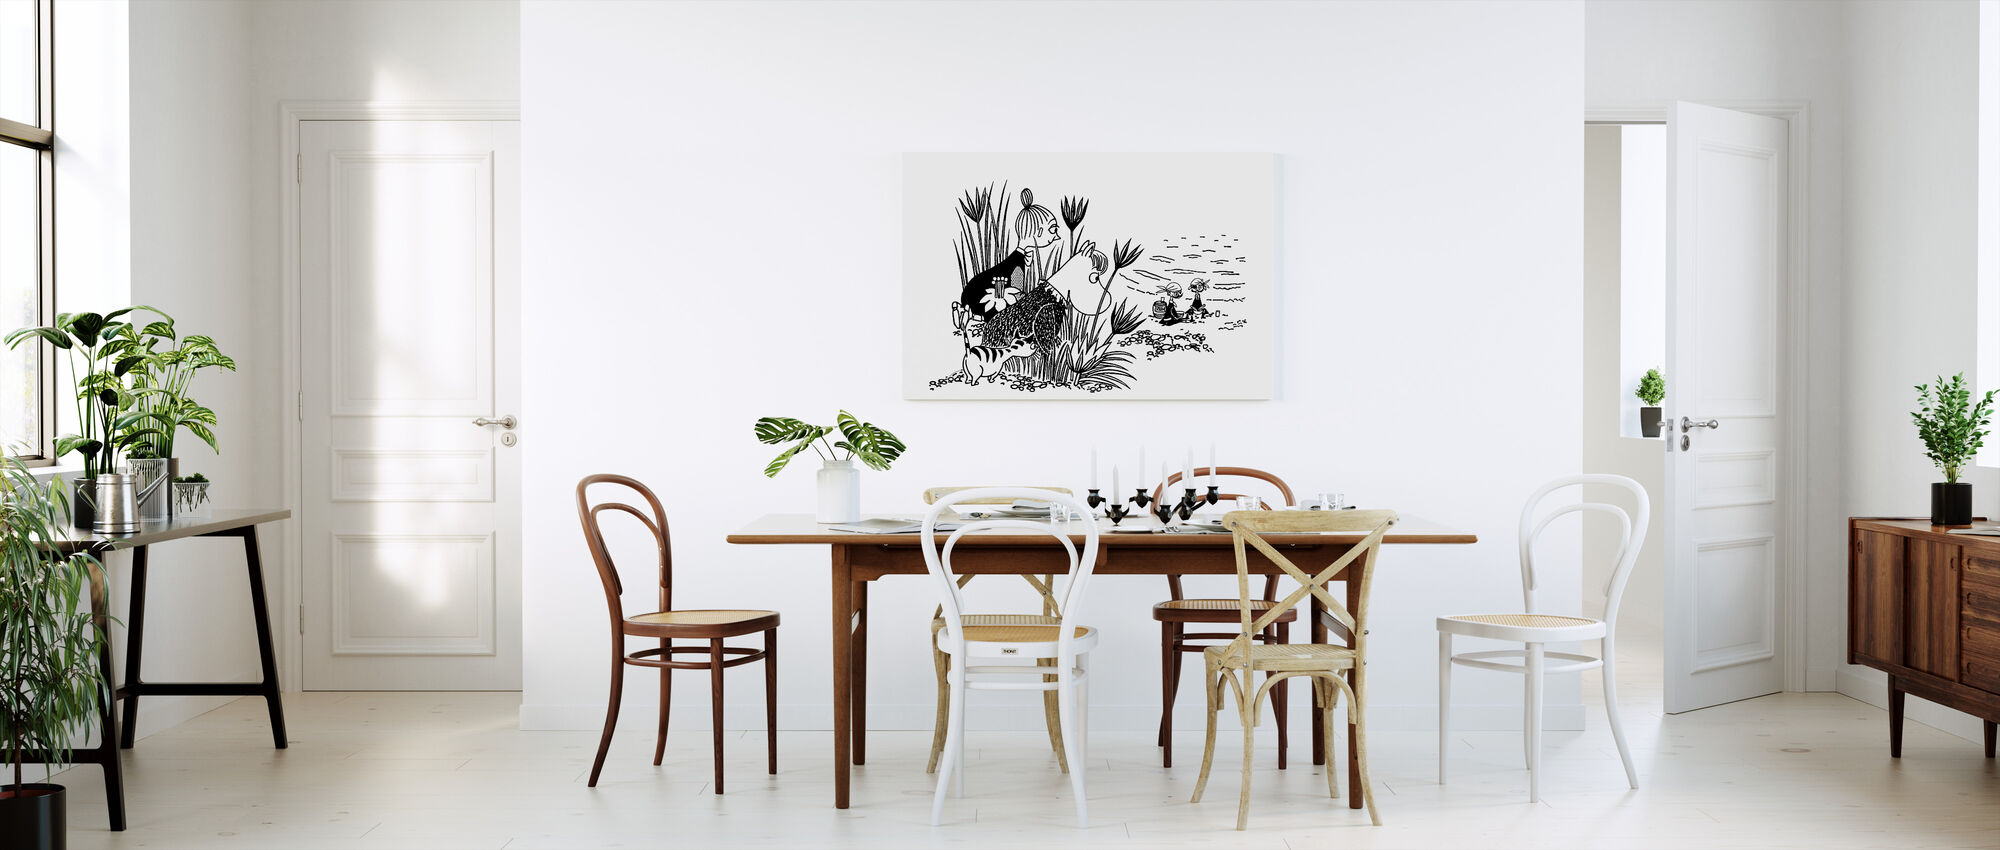 Moomin - piraat picknick - Canvas print - Keuken